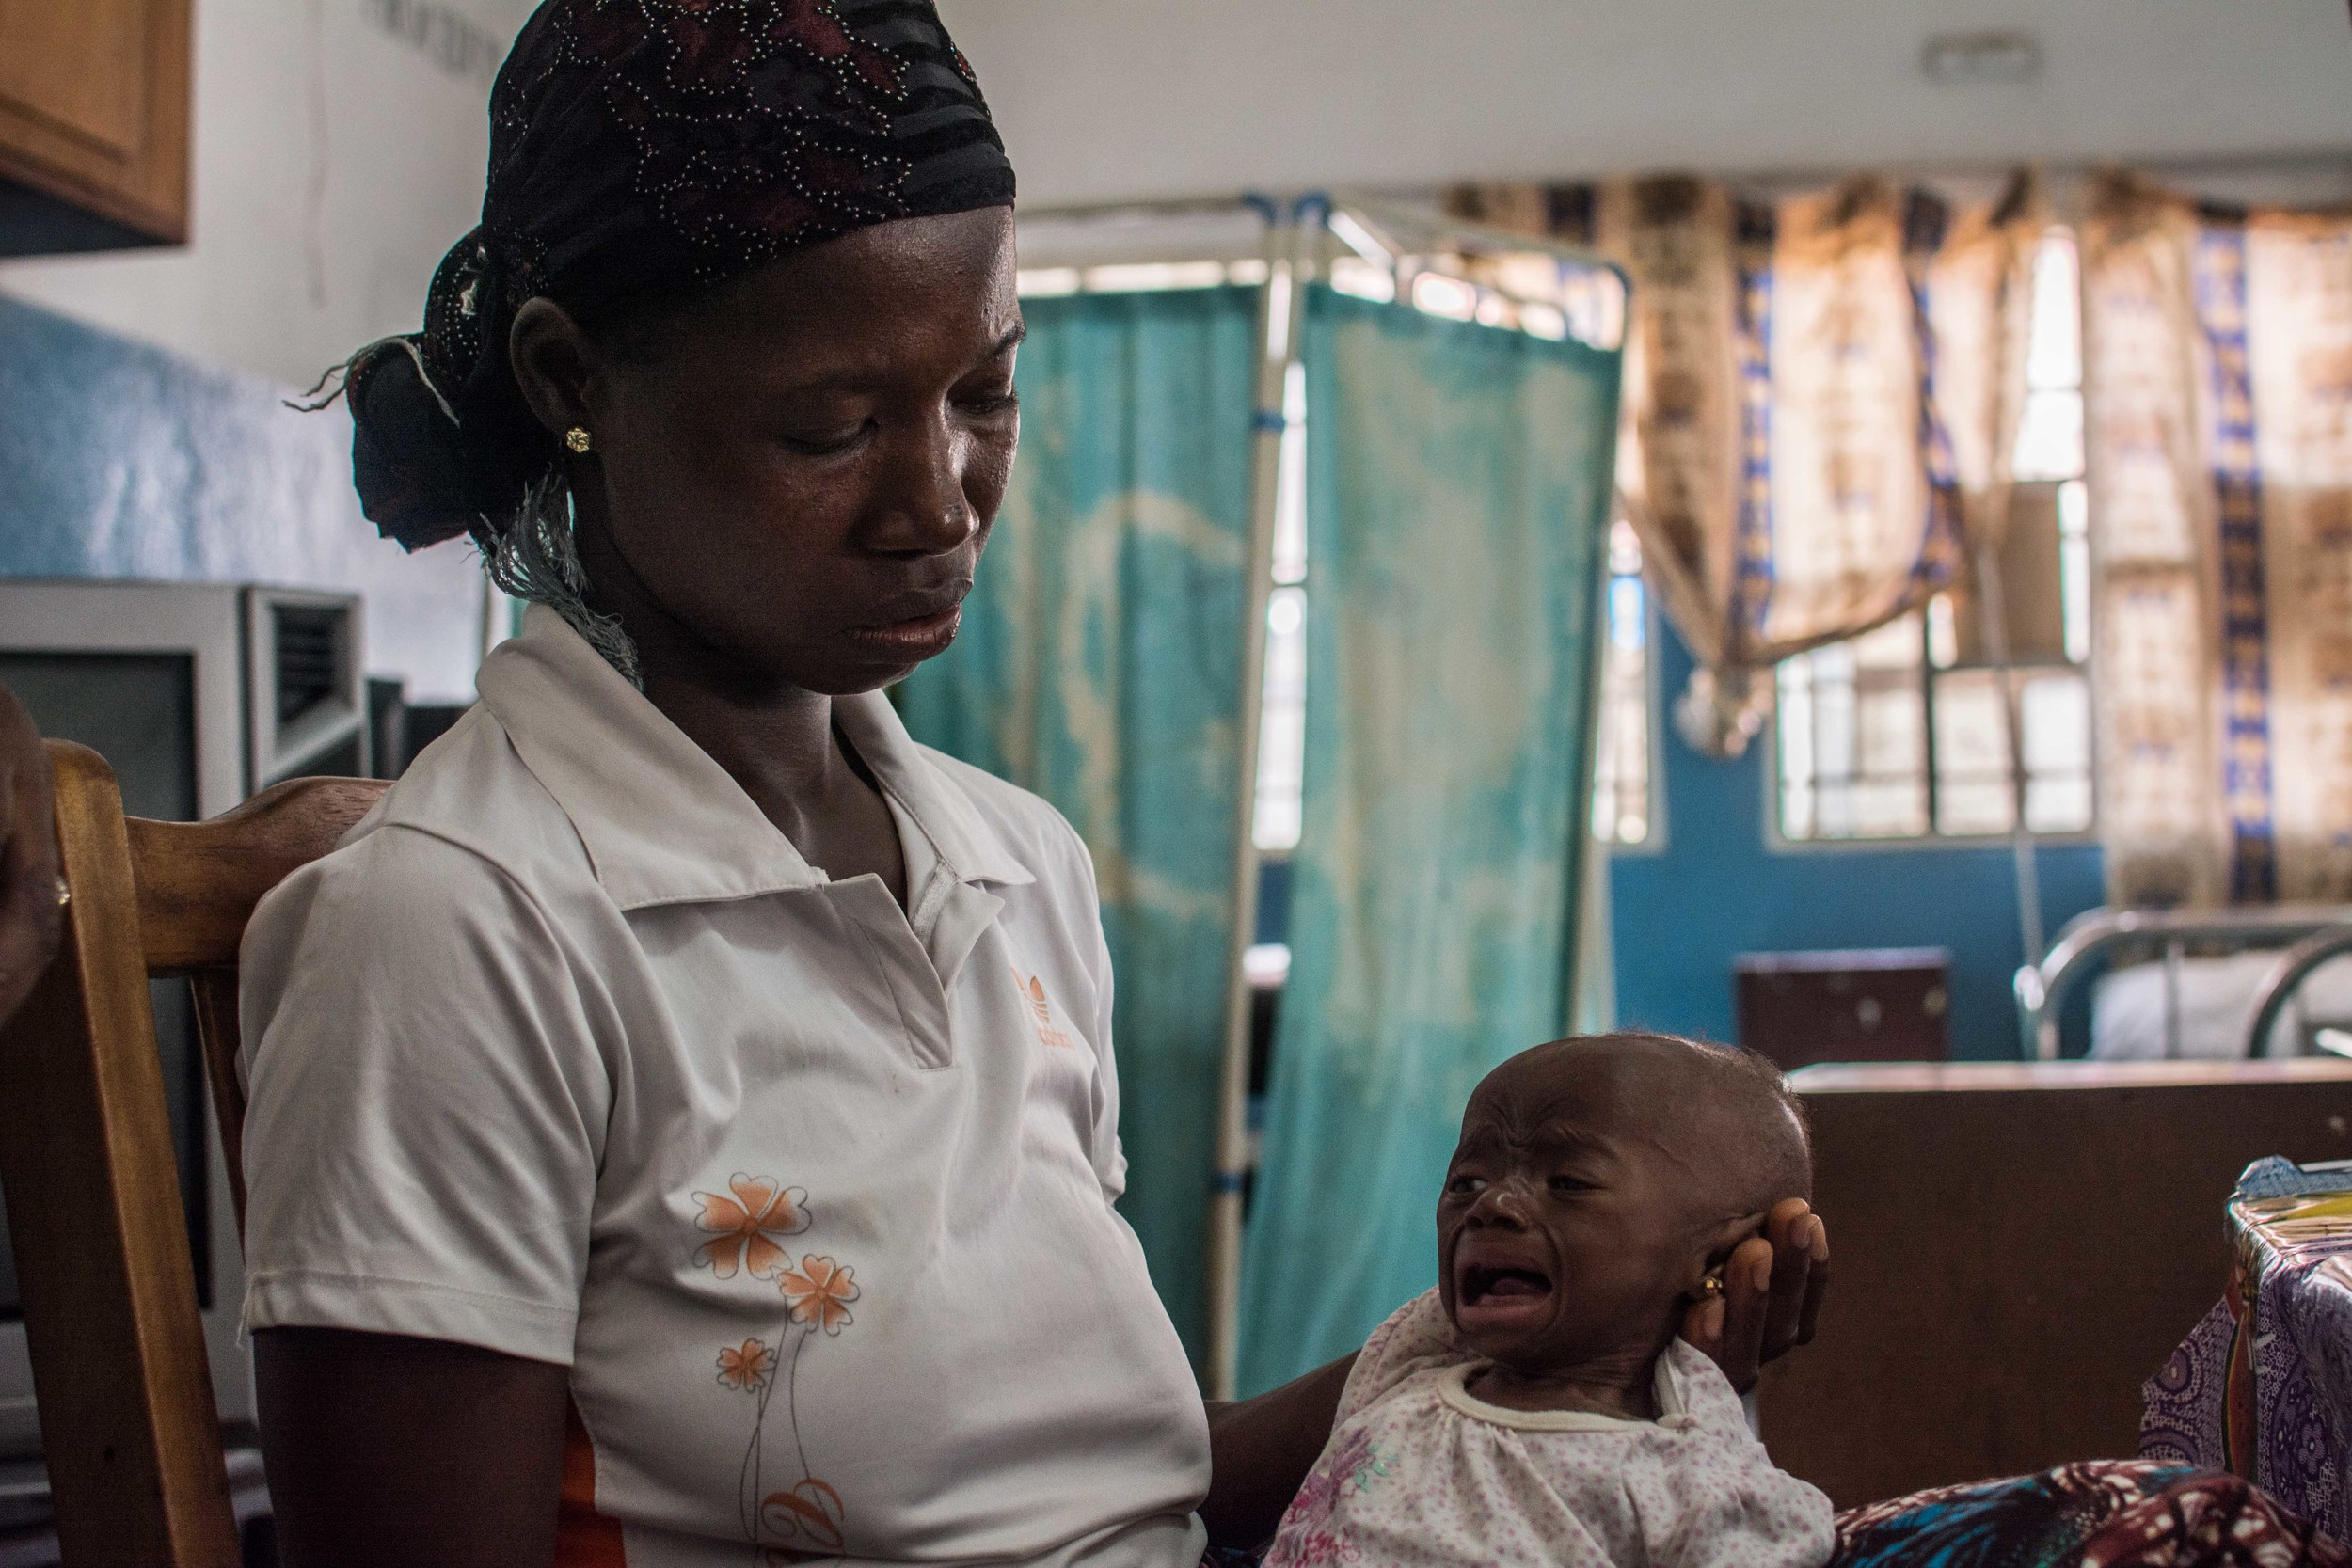 Fatimata Sankoh holds her severely malnourished child at Ola During Children's Hospital in eastern Freetown, where the number of children being treated for malnutrition has also increased since the Ebola outbreak.